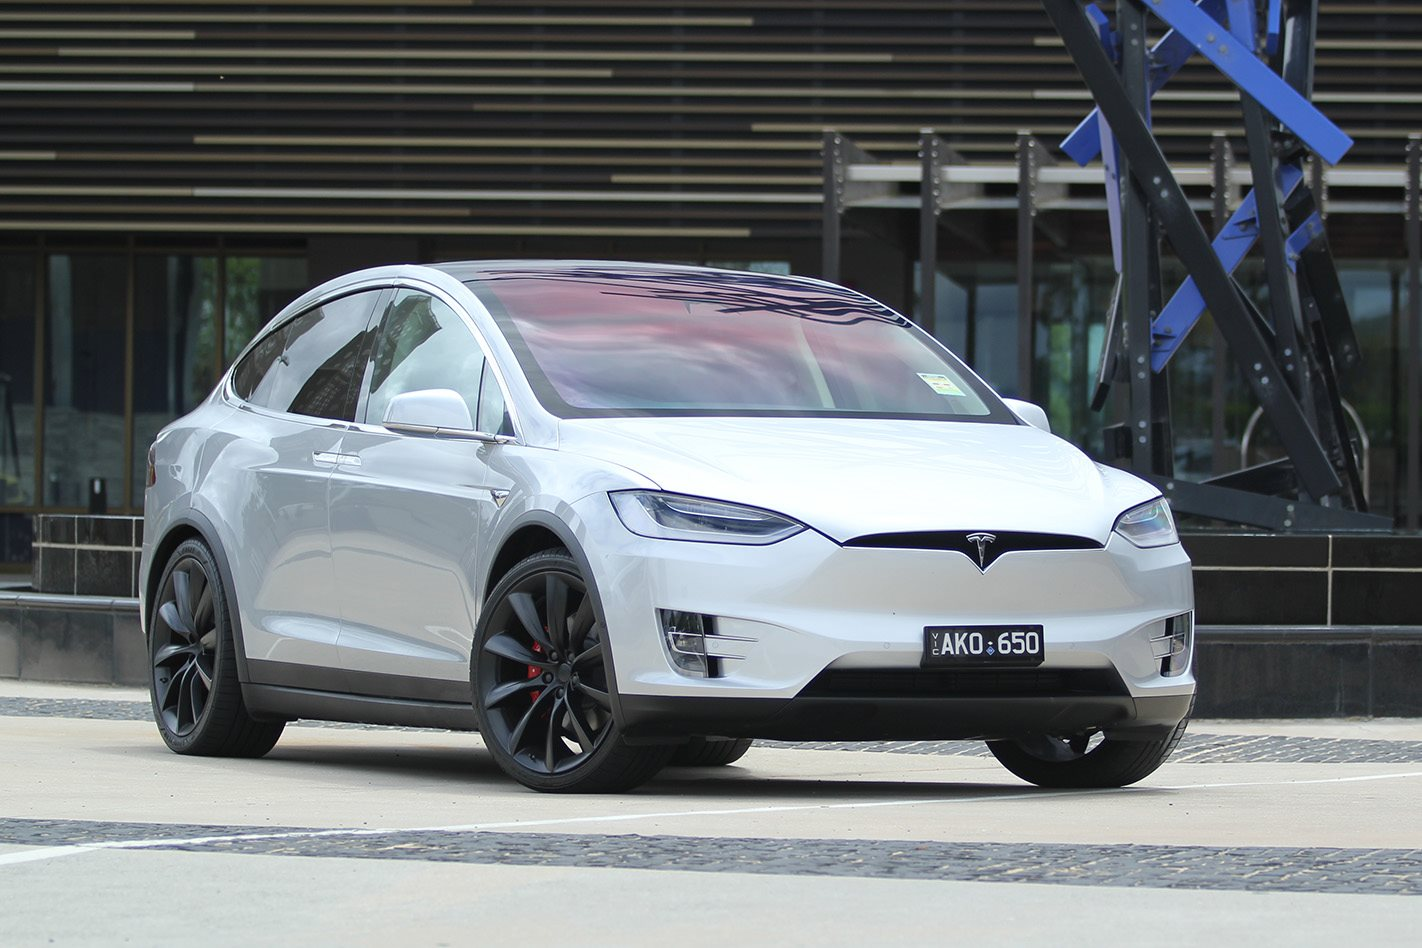 2018 Tesla Model X Price Falls As Production Efficiency Improves